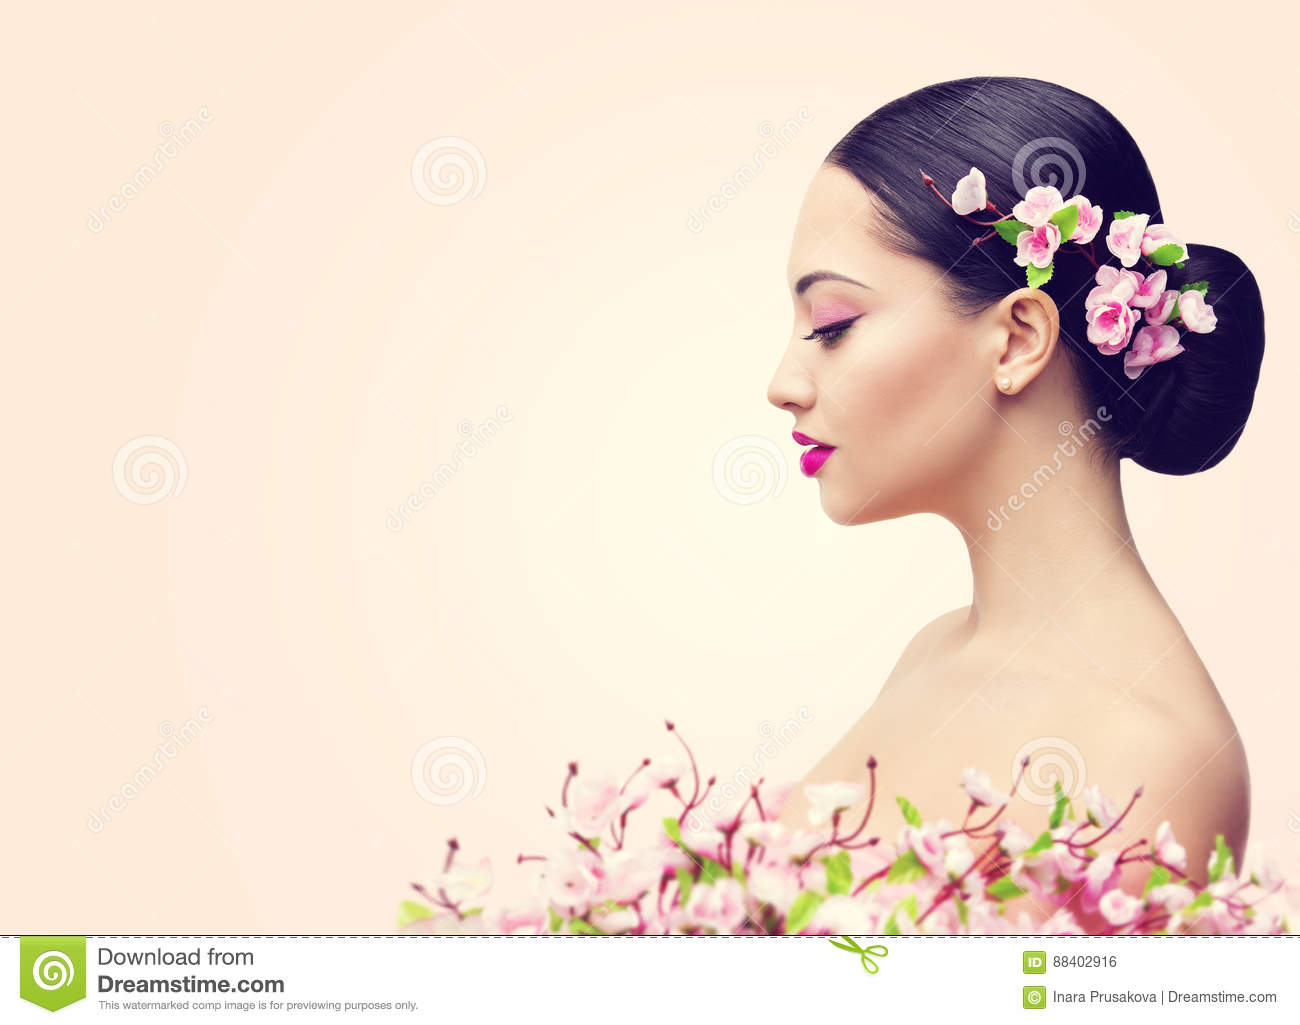 Japanese Girl and Flowers, Asian Woman Beauty Makeup Profile